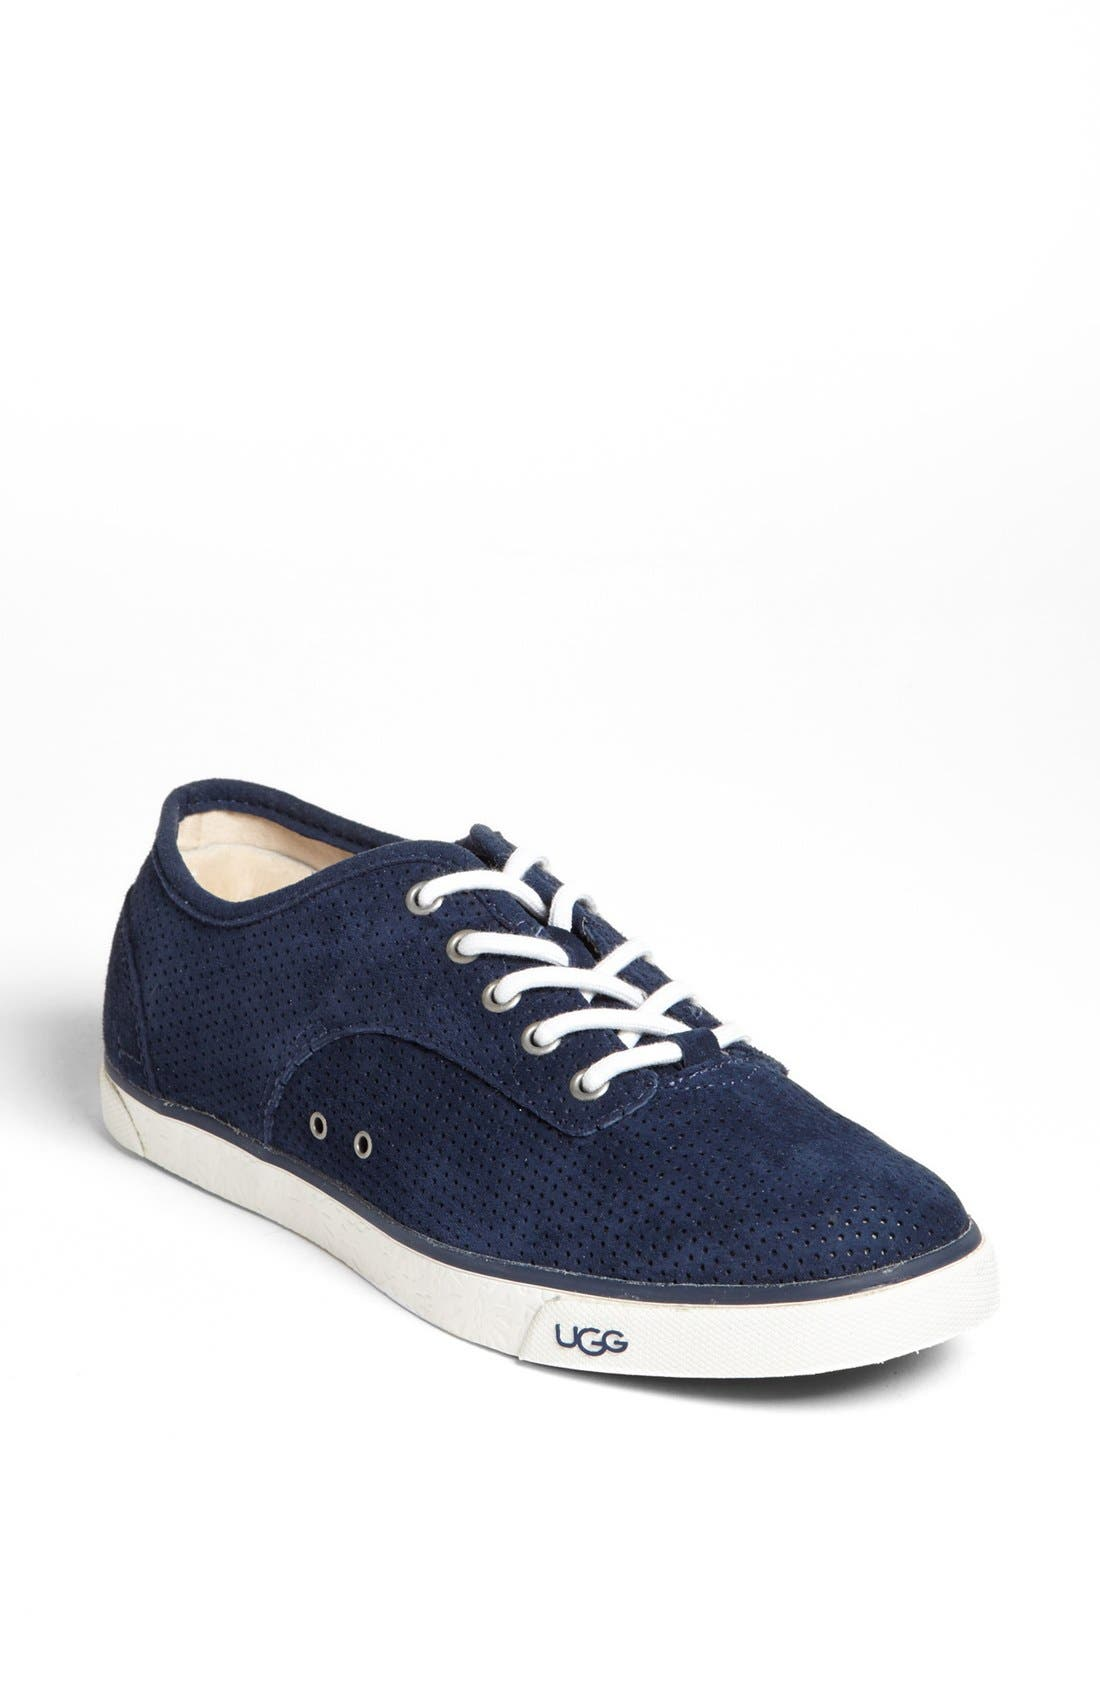 Alternate Image 1 Selected - UGG® Australia 'Hally' Perforated Suede Sneaker